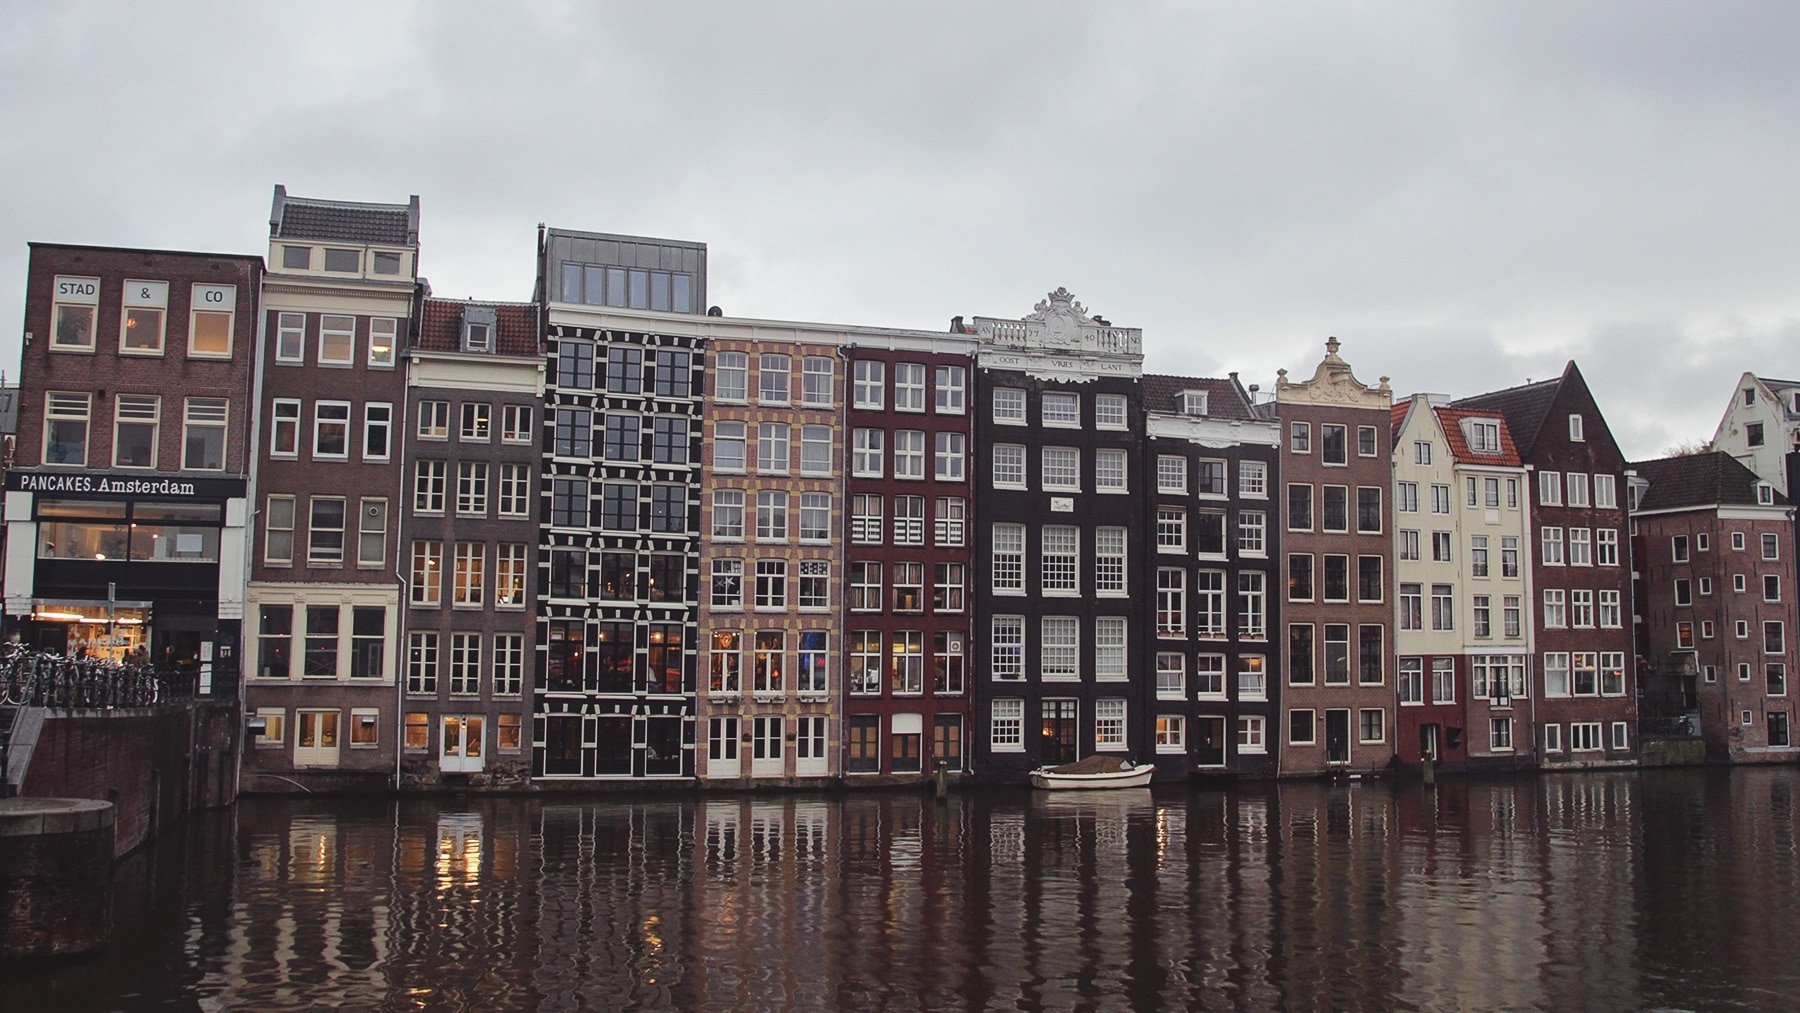 A row of houses off a canal in Amsterdam.